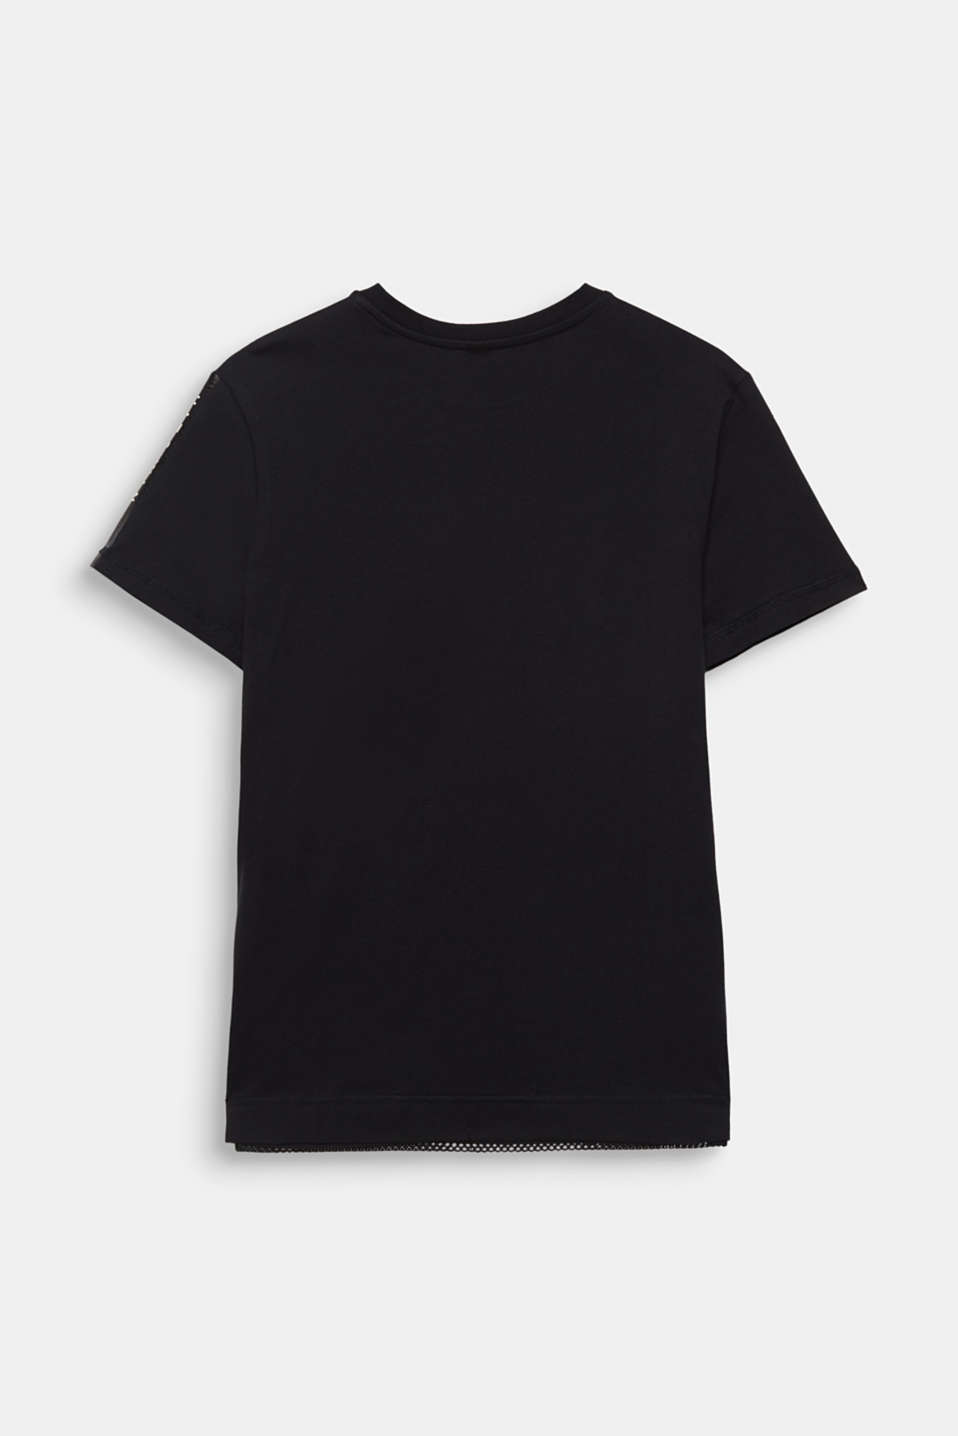 Cotton top with mesh layering, LCBLACK, detail image number 1